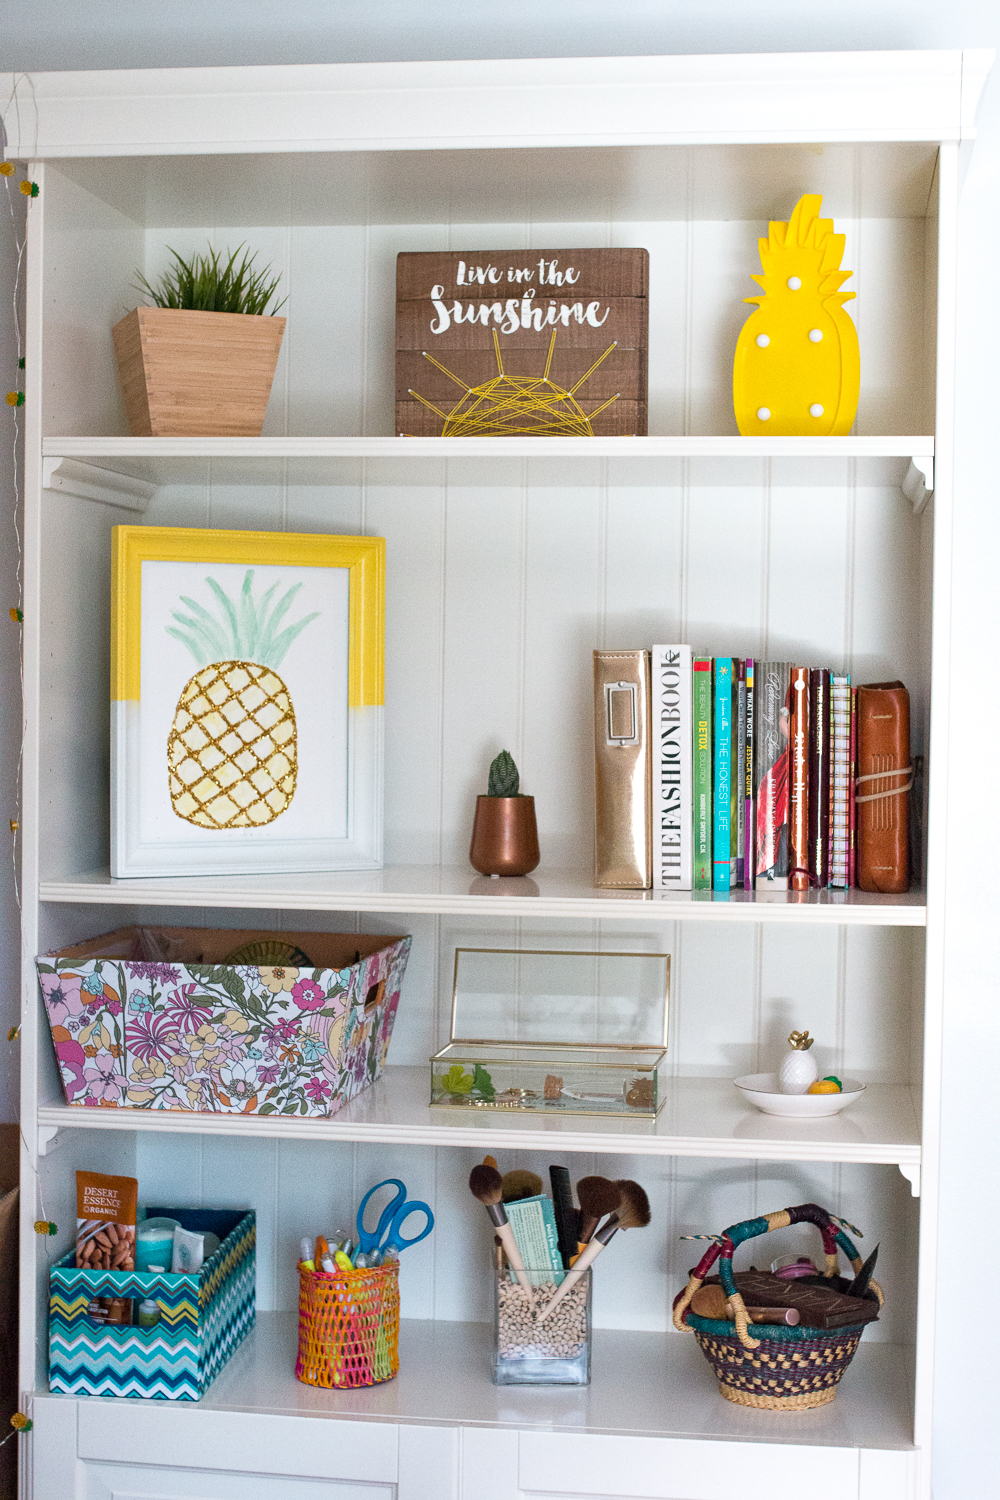 How to Organize a Bookshelf in a Small Space